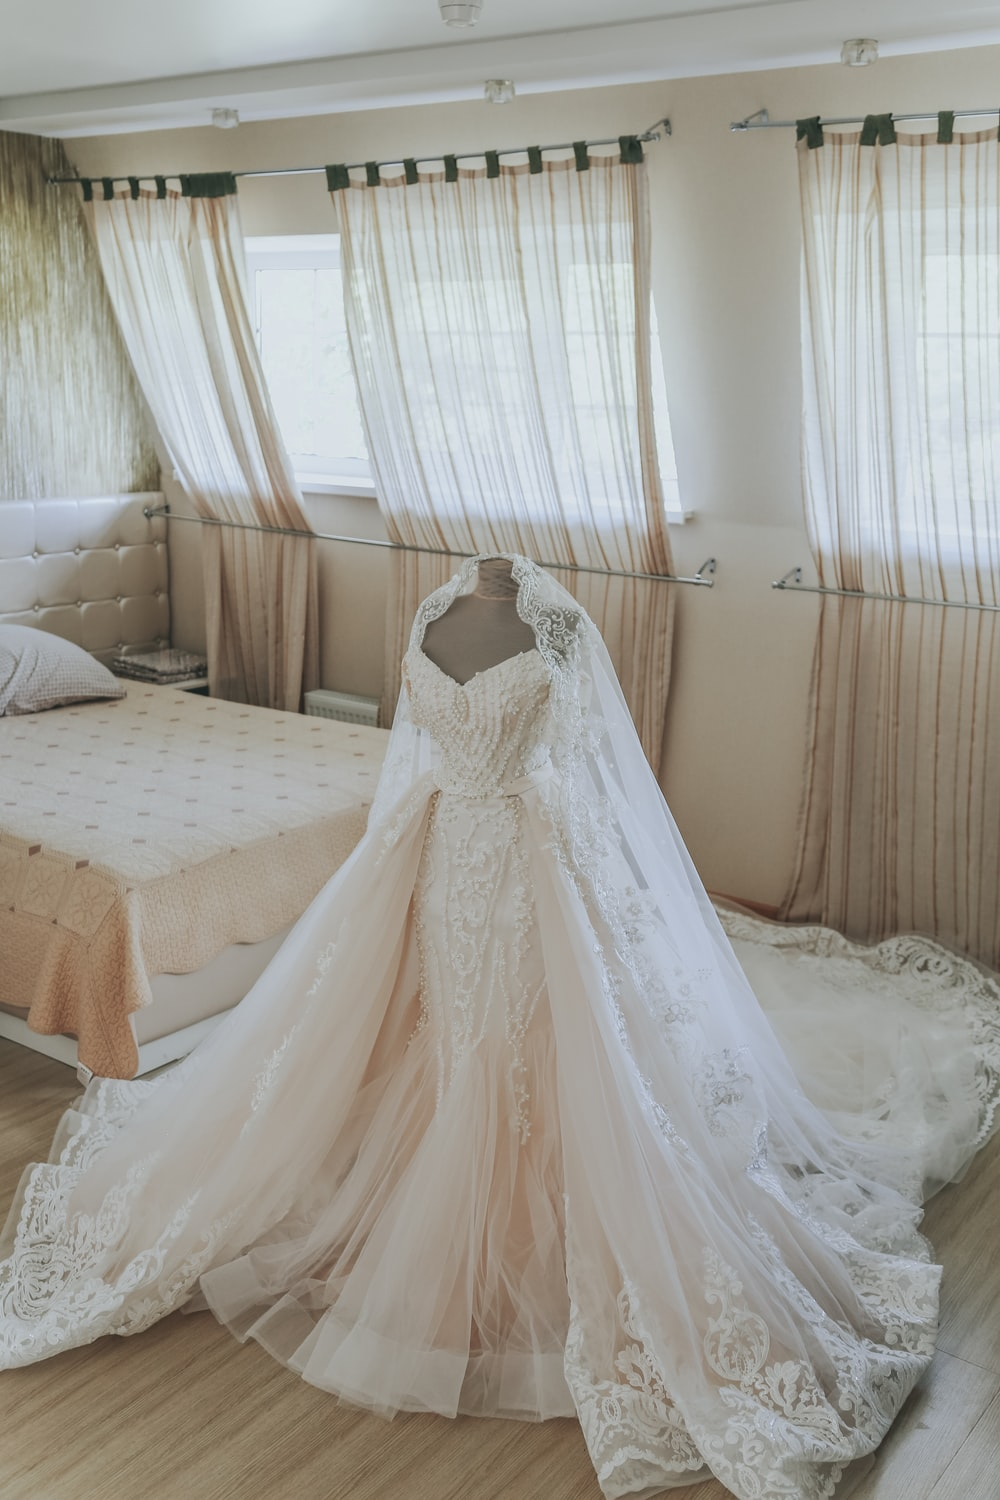 Wedding Gown Pictures   Download Free Images on Unsplash